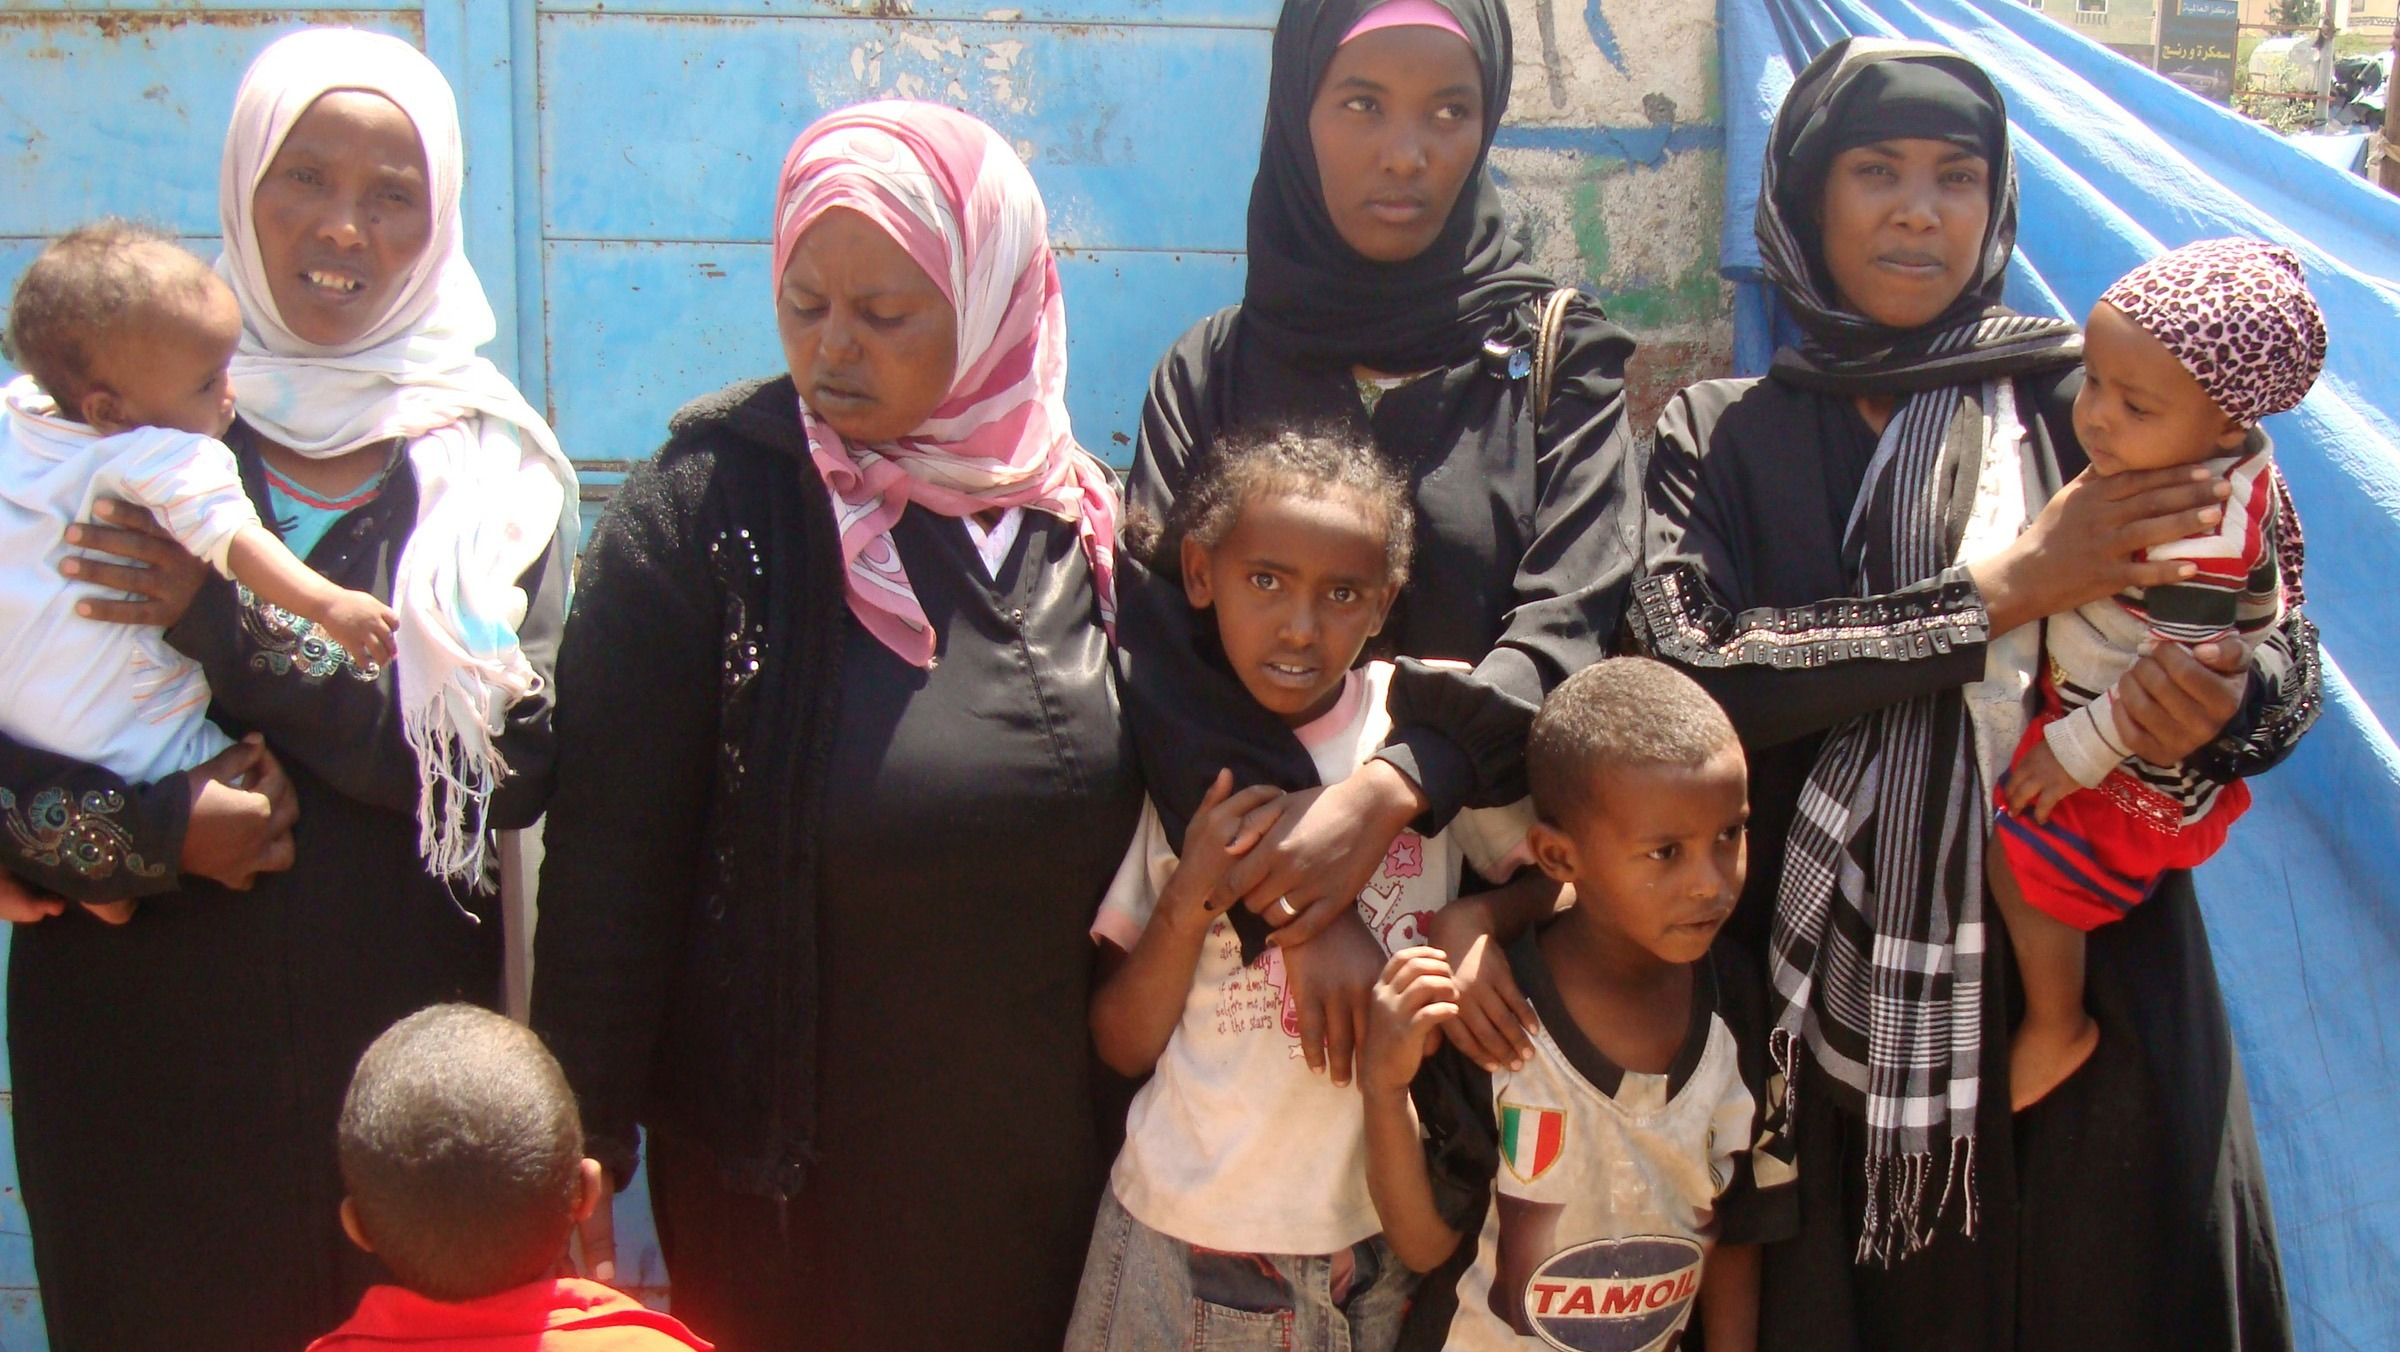 African migrants in Yemen